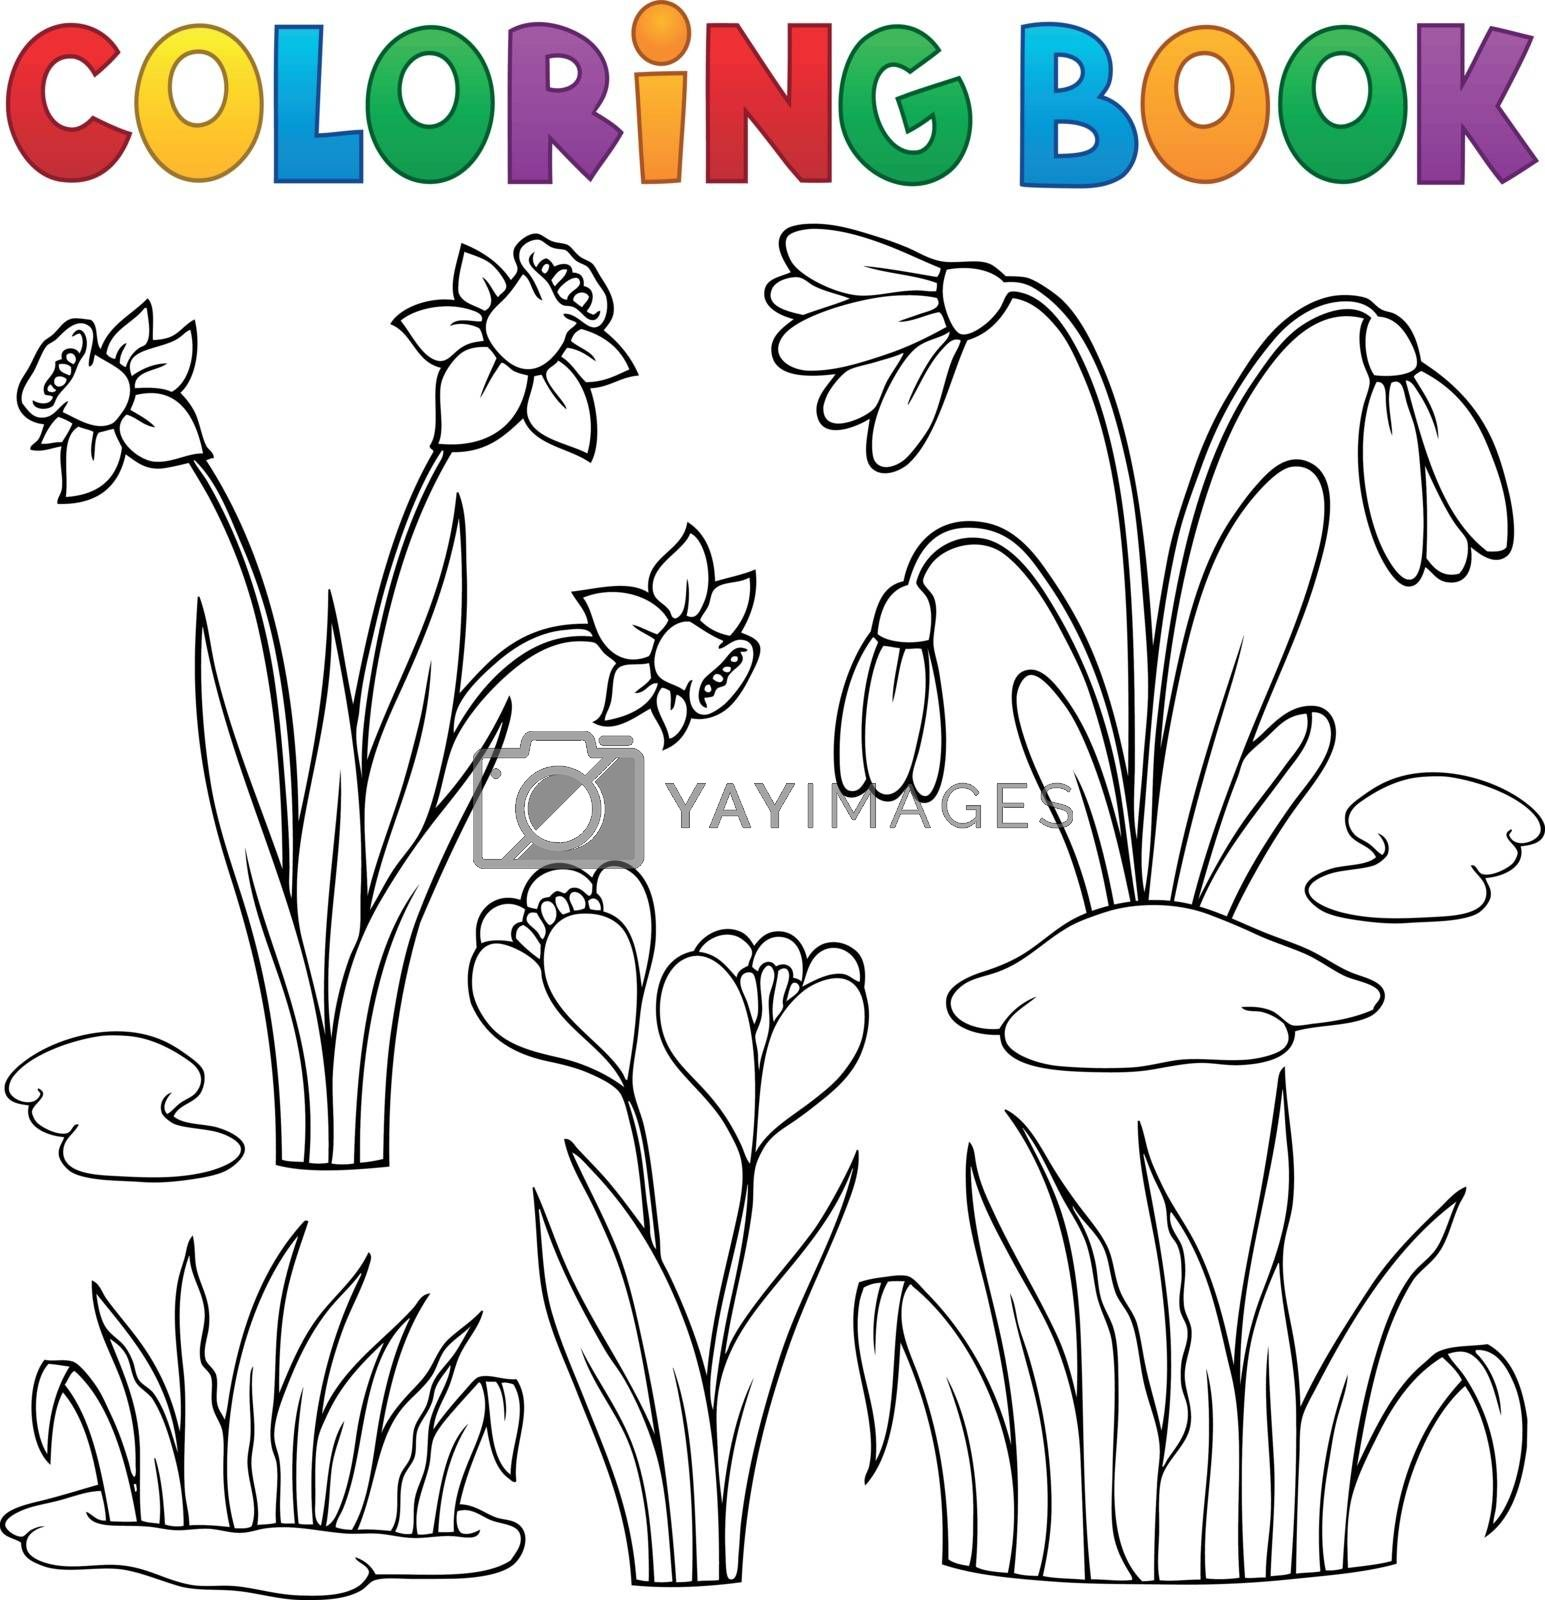 Coloring book early spring flowers set 1 - eps10 vector illustration.